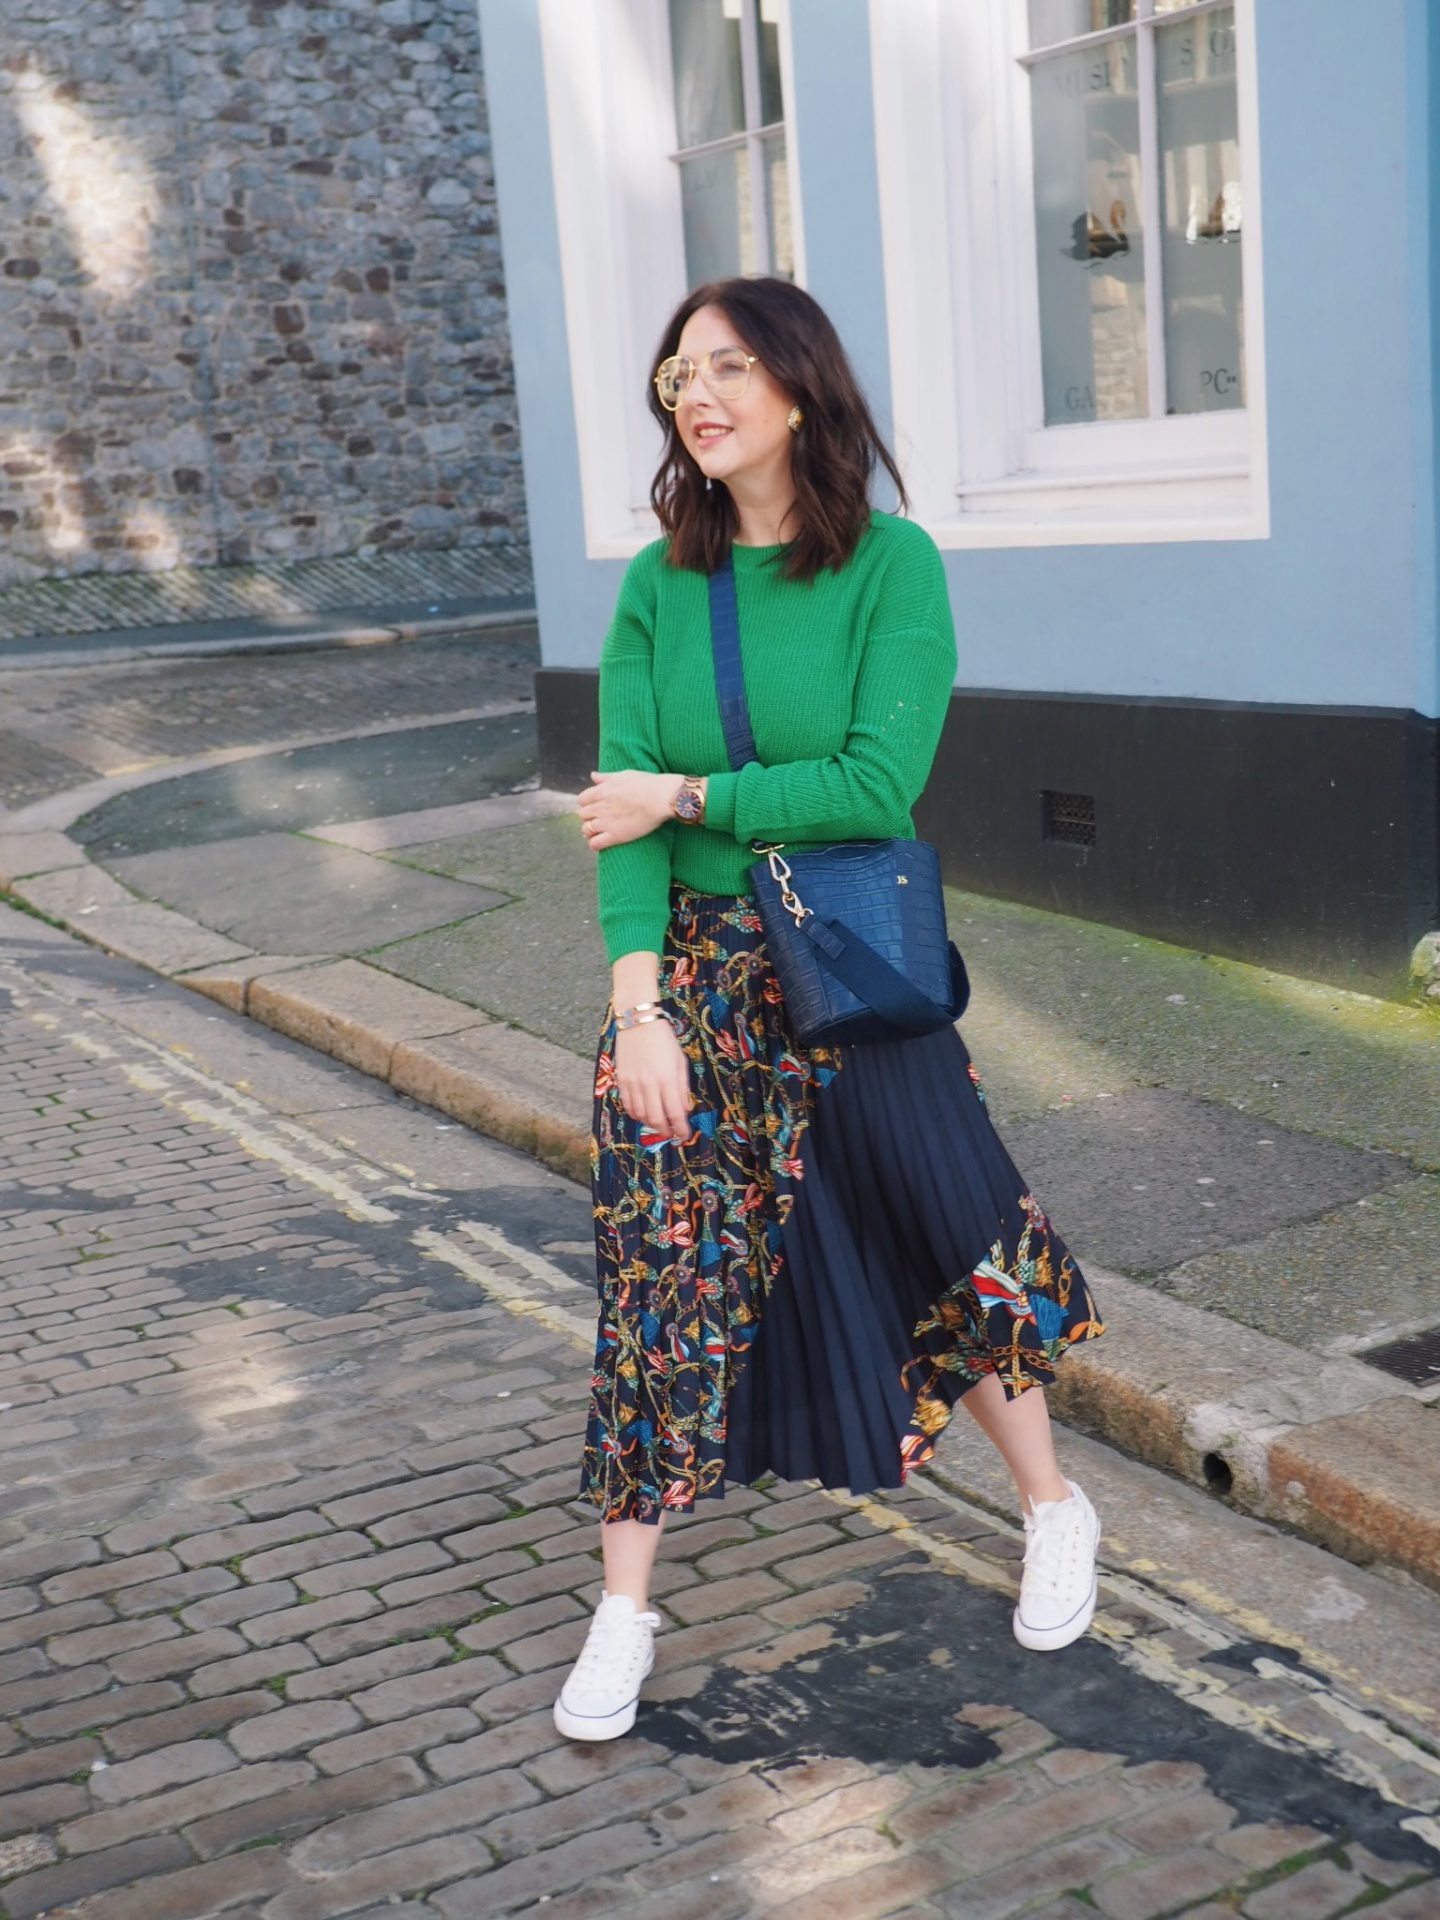 Fashion blogger demonstrates styling ideas for a midi skirt